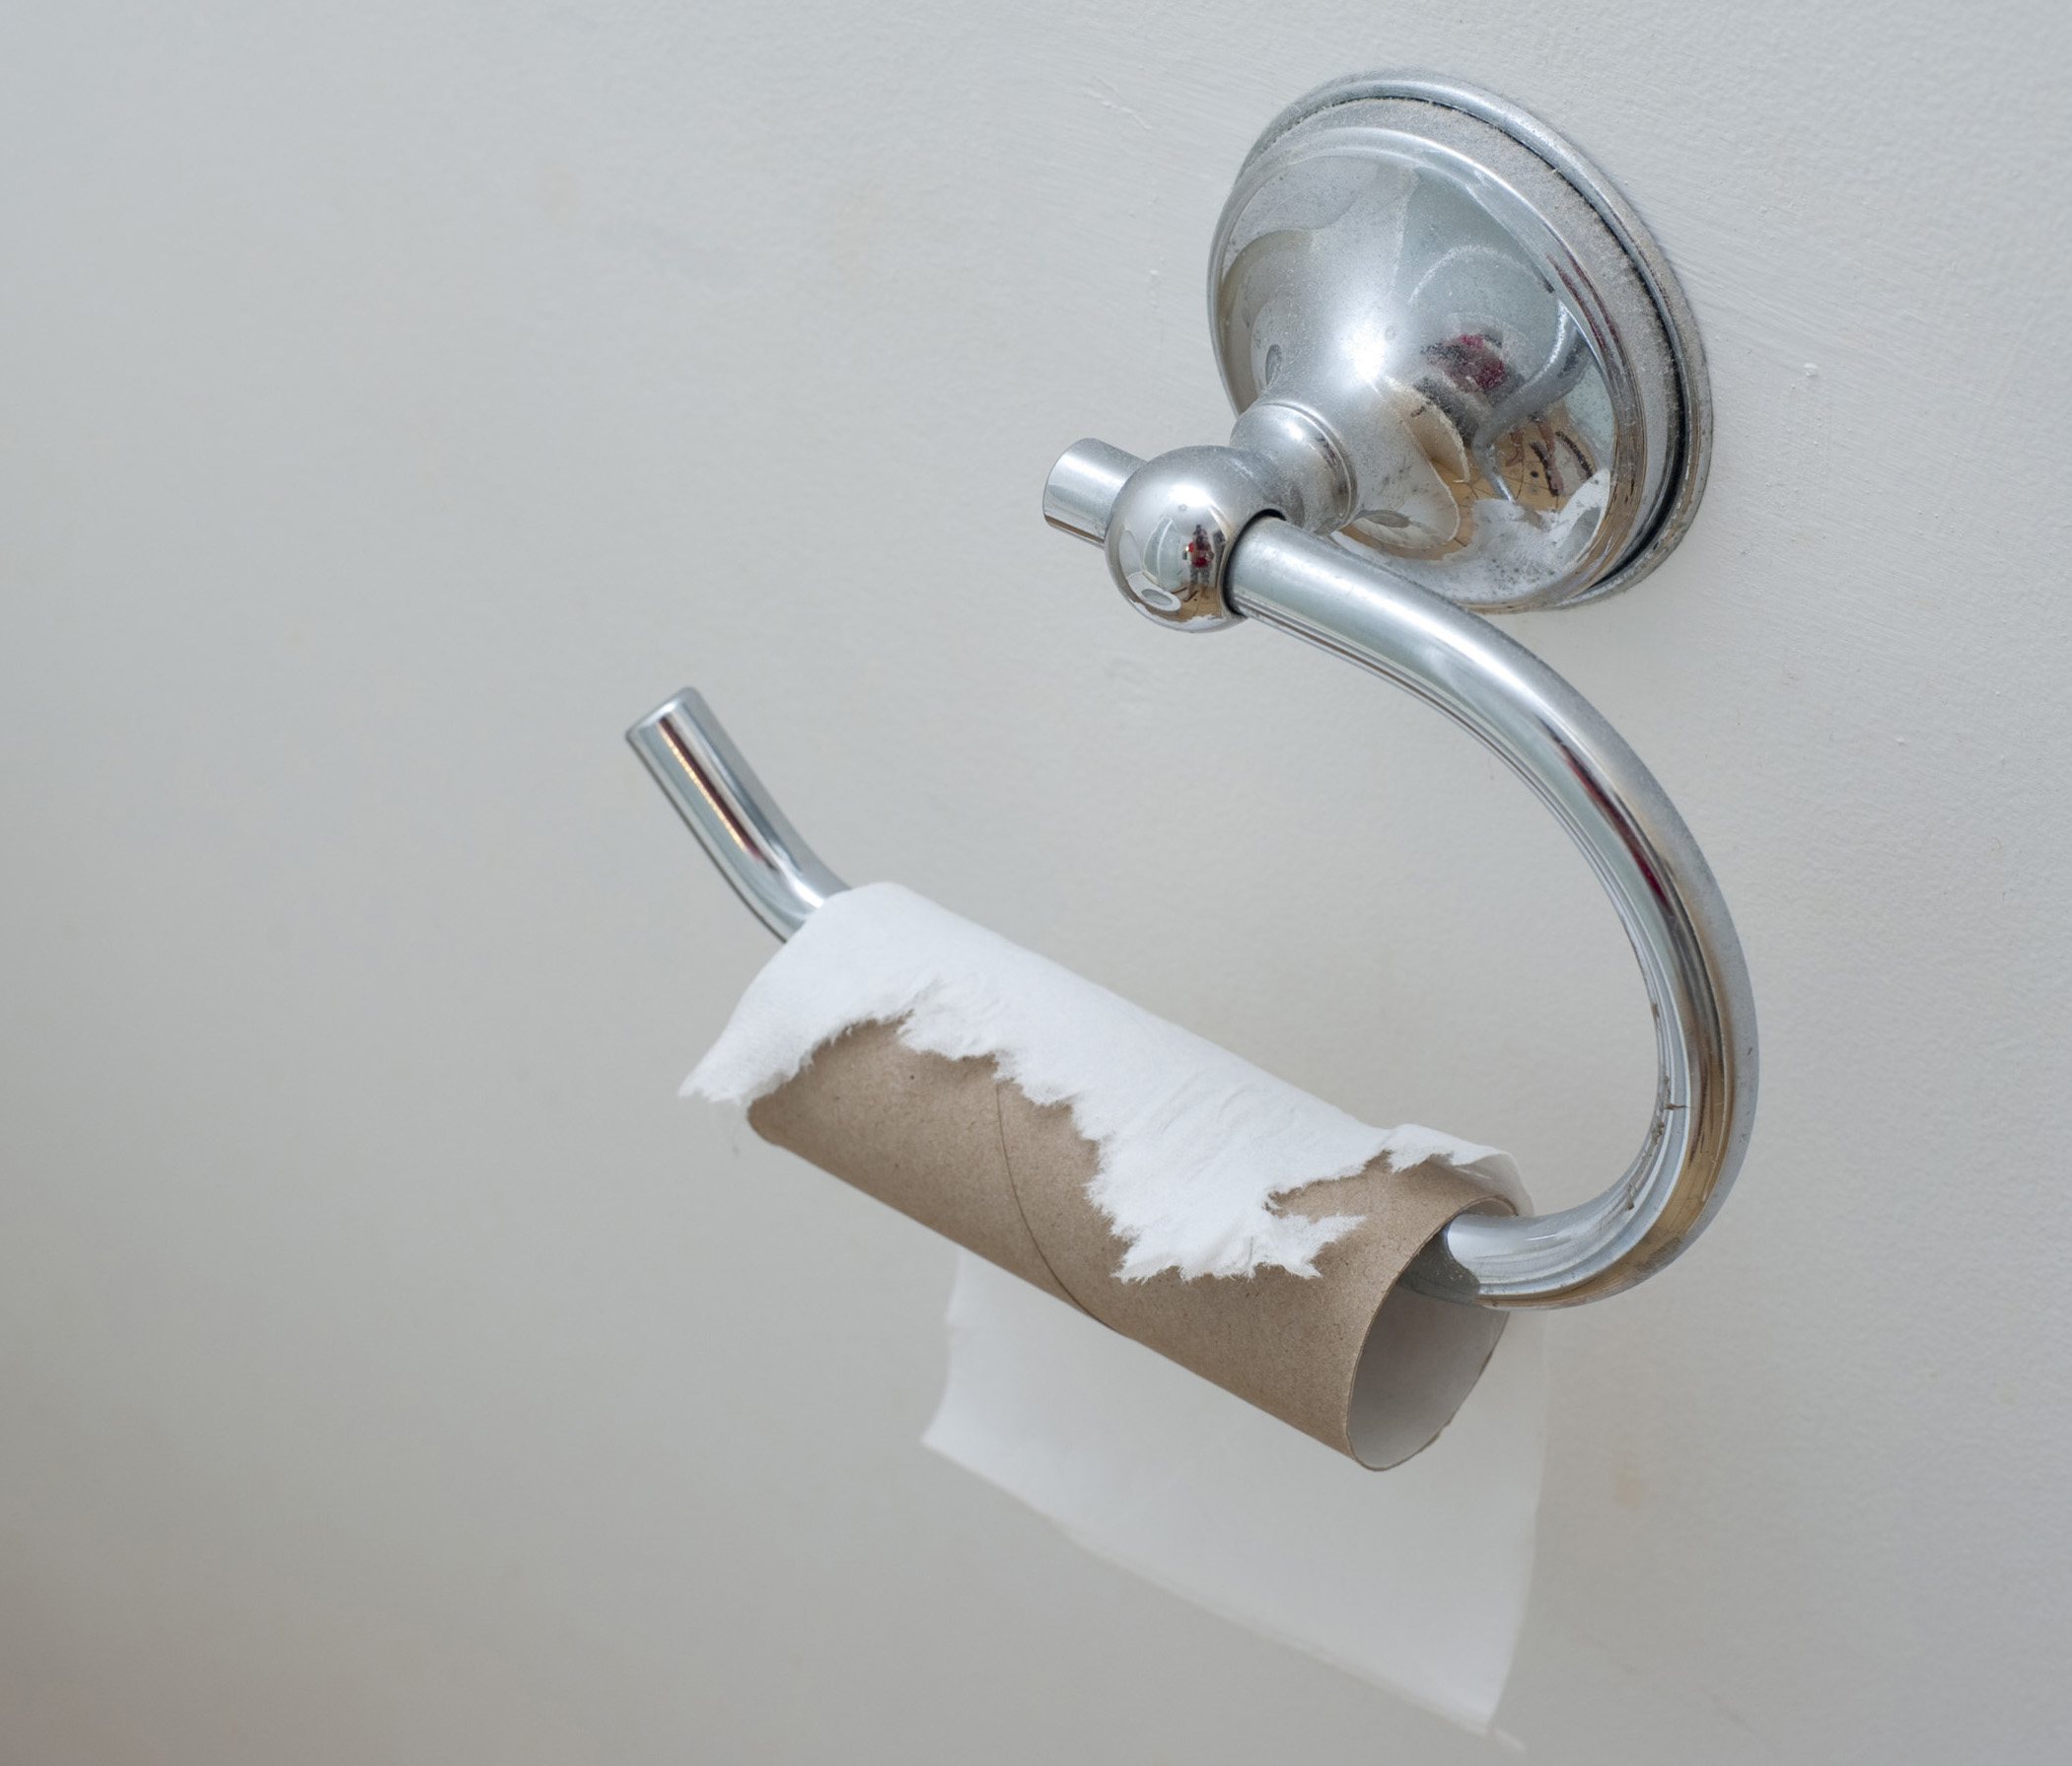 How To Save Your Startup – One Toilet Paper Roll At A Time